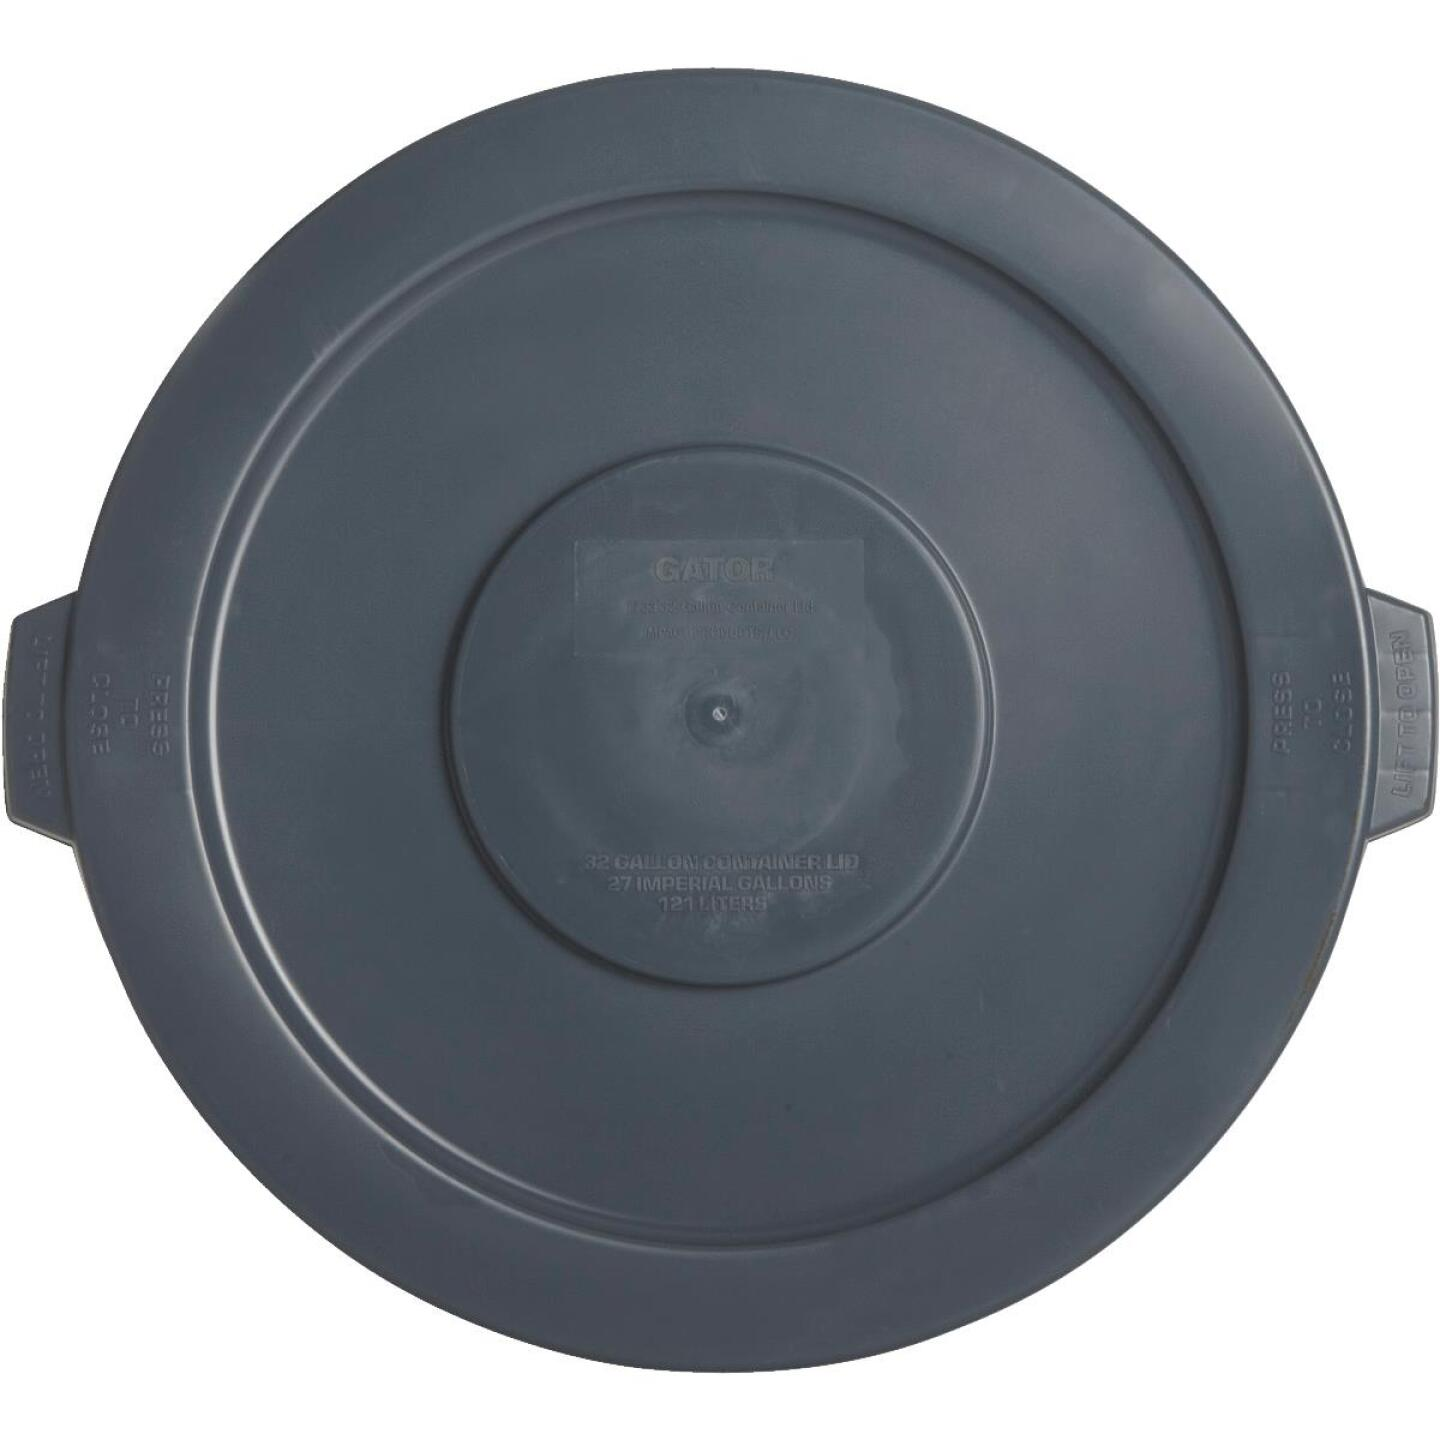 Gator Gray Trash Can Lid for 32 Gal. Trash Can Image 1